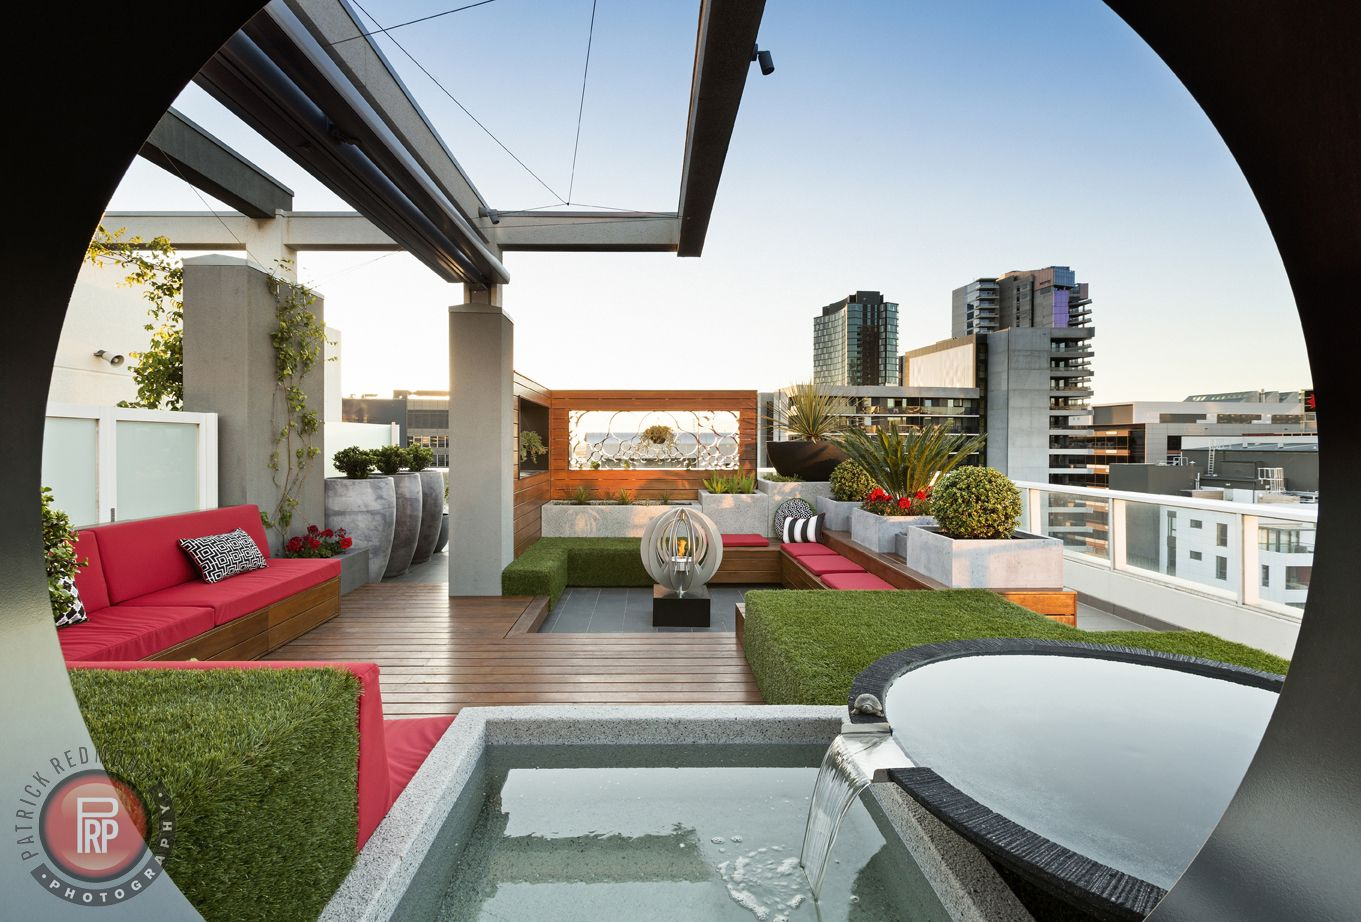 penthouse rooftop garden by paal grant landscapes